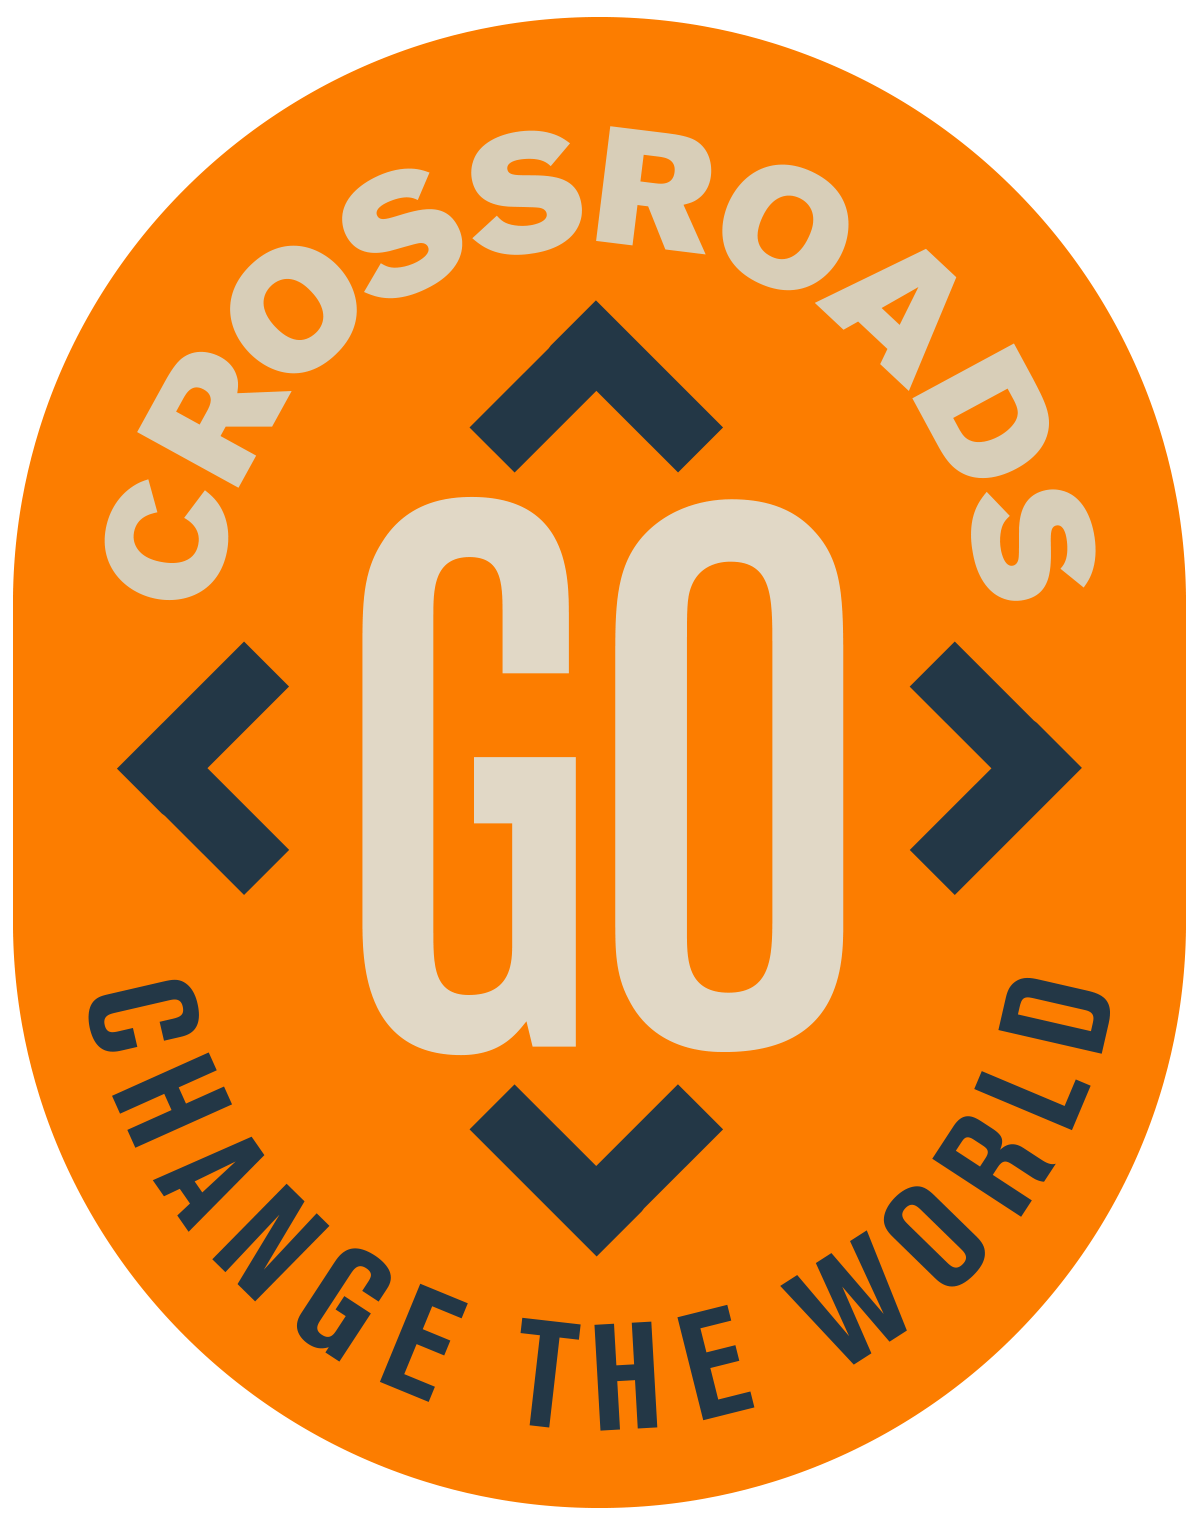 crossroads reachout logo